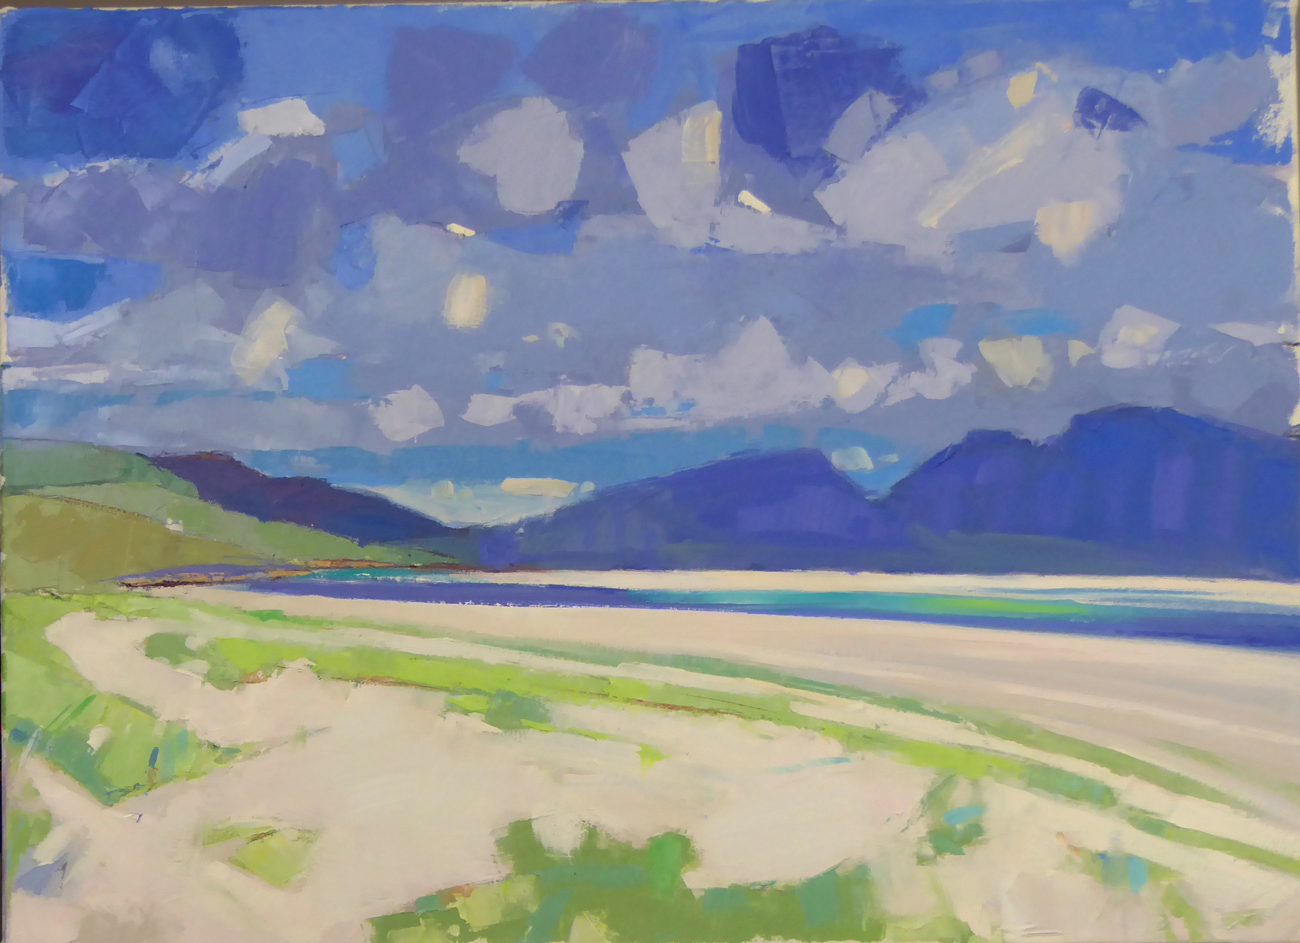 Low Tide, Luskintyre, Harris